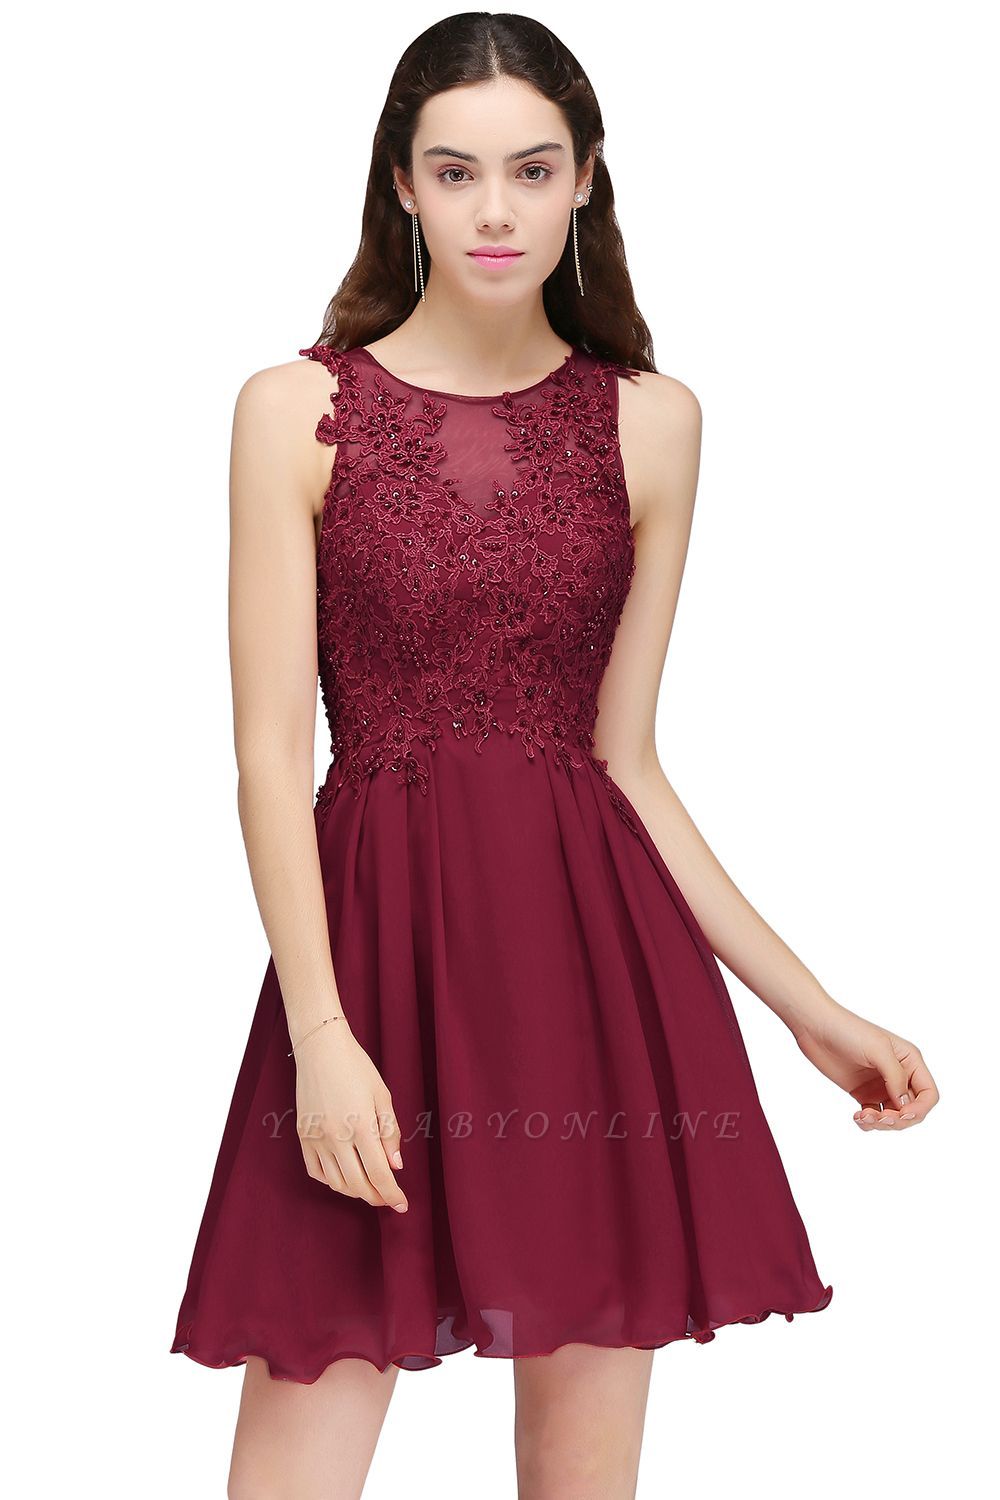 Cheap Burgundy A-line Homecoming Dress with Lace Appliques in Stock